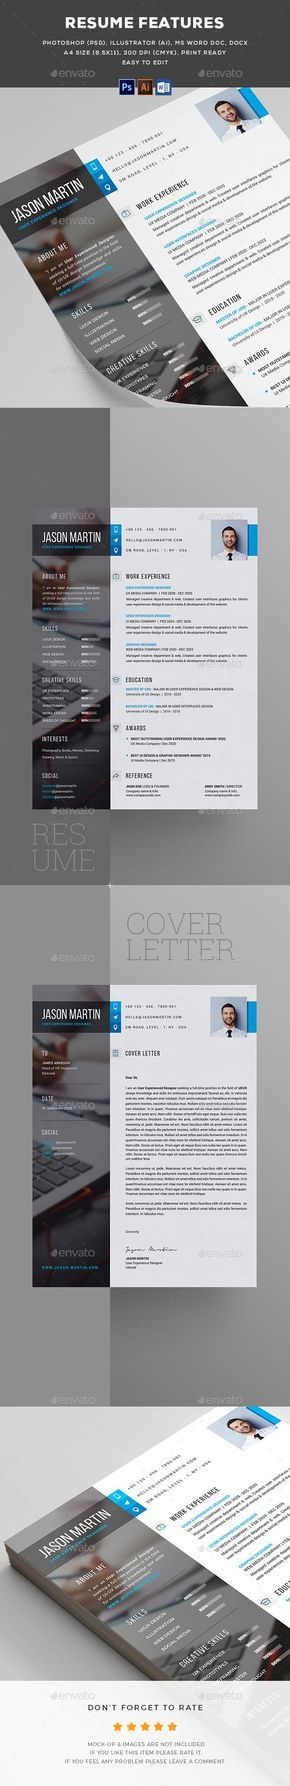 Best 25+ Simple resume examples ideas on Pinterest Simple resume - simple of resume